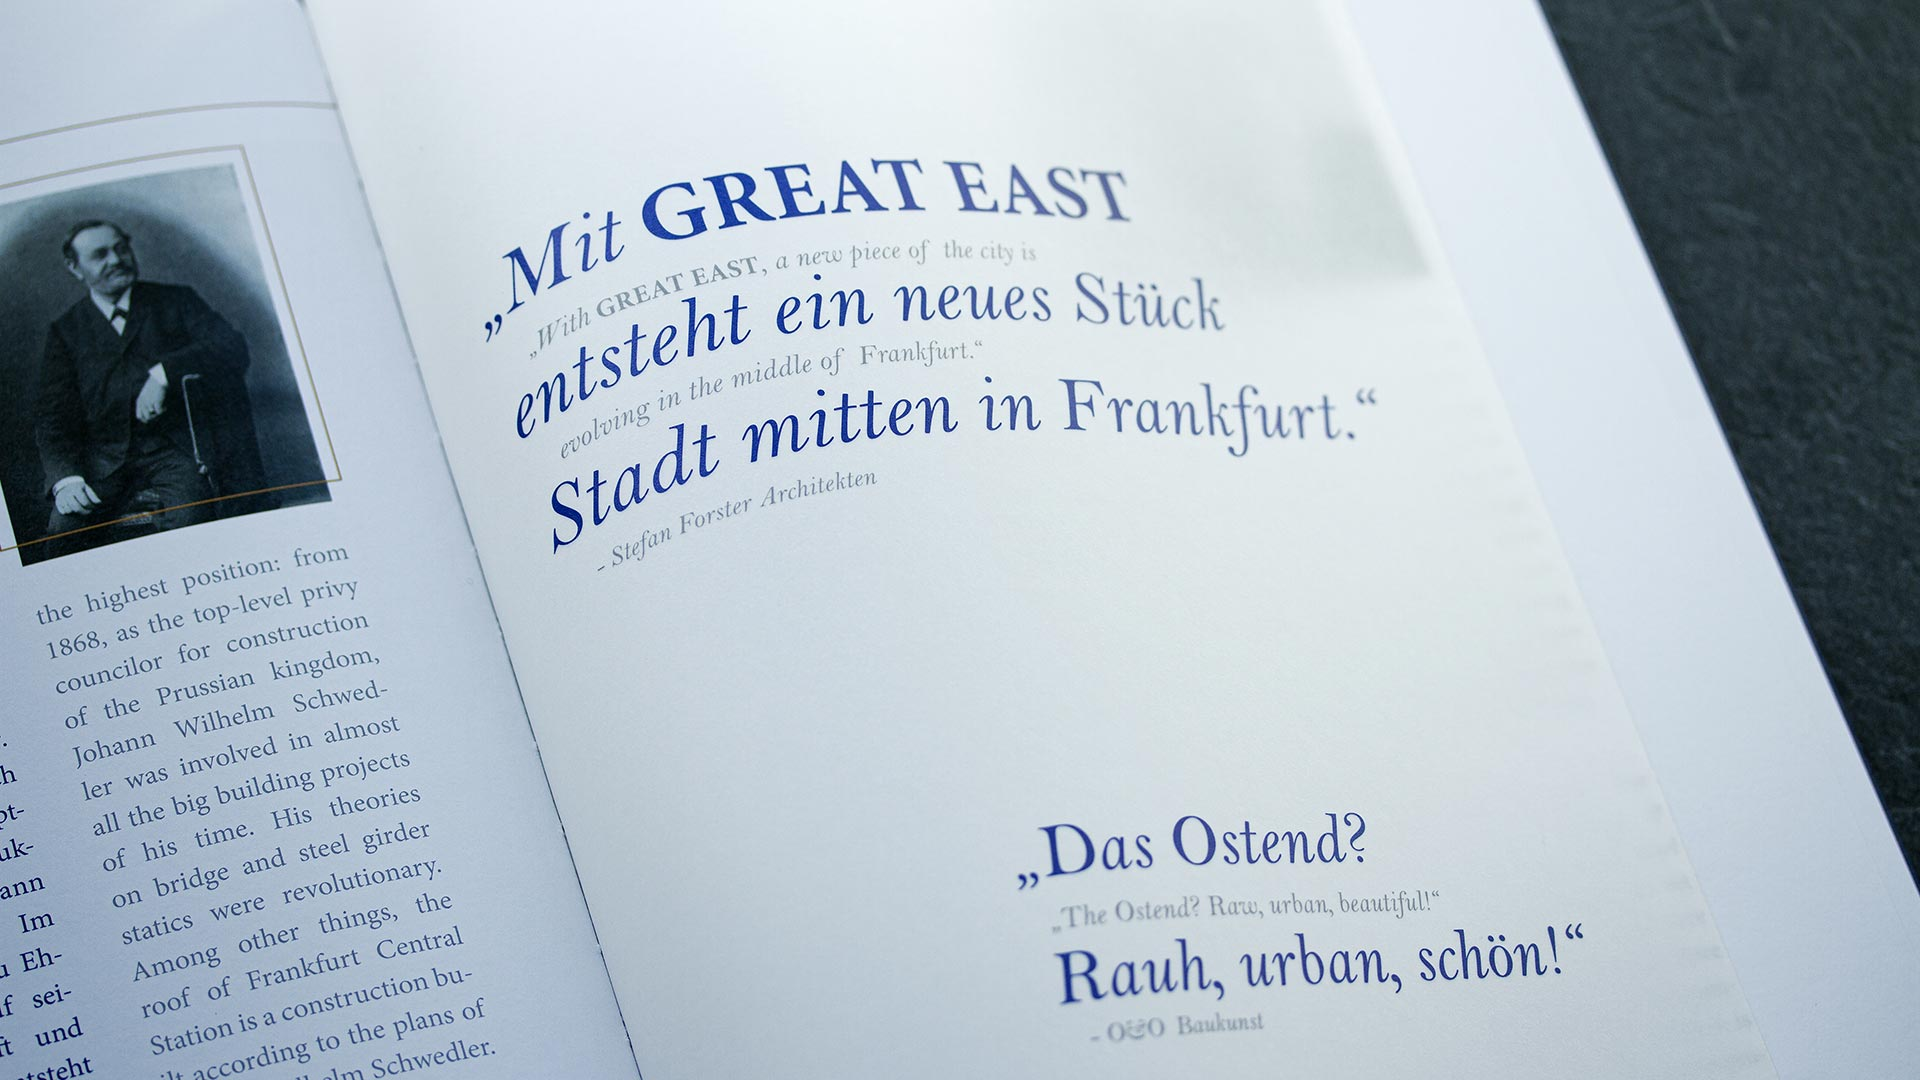 GREAT-EAST_1_Raum_Visionen_Immobilien_marketing